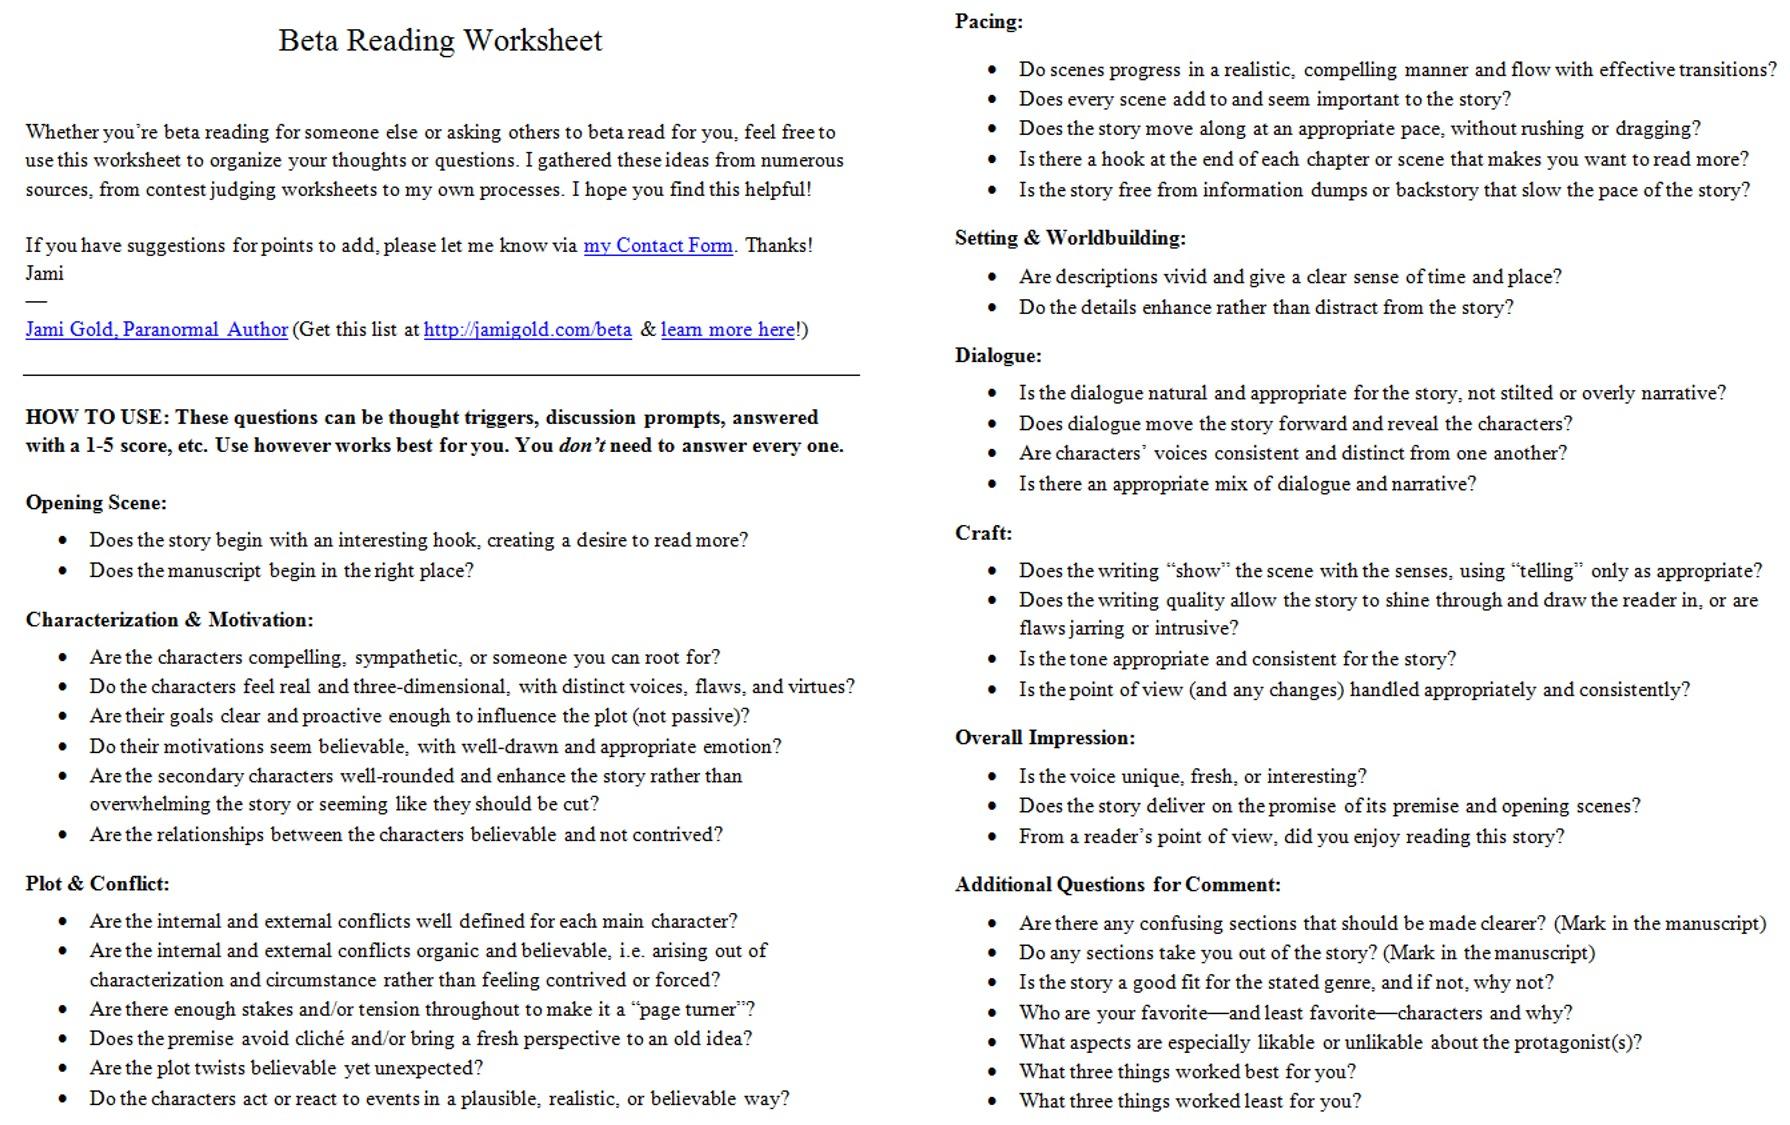 Weirdmailus  Wonderful Worksheets For Writers  Jami Gold Paranormal Author With Extraordinary Screen Shot Of The Twopage Beta Reading Worksheet With Delectable Days Of The Weeks Worksheets Also Wemberly Worried Worksheets In Addition Adding S Worksheet And Converting Percents To Fractions Worksheet As Well As Esl Activities For Adults Worksheets Additionally Countable And Uncountable Worksheet From Jamigoldcom With Weirdmailus  Extraordinary Worksheets For Writers  Jami Gold Paranormal Author With Delectable Screen Shot Of The Twopage Beta Reading Worksheet And Wonderful Days Of The Weeks Worksheets Also Wemberly Worried Worksheets In Addition Adding S Worksheet From Jamigoldcom